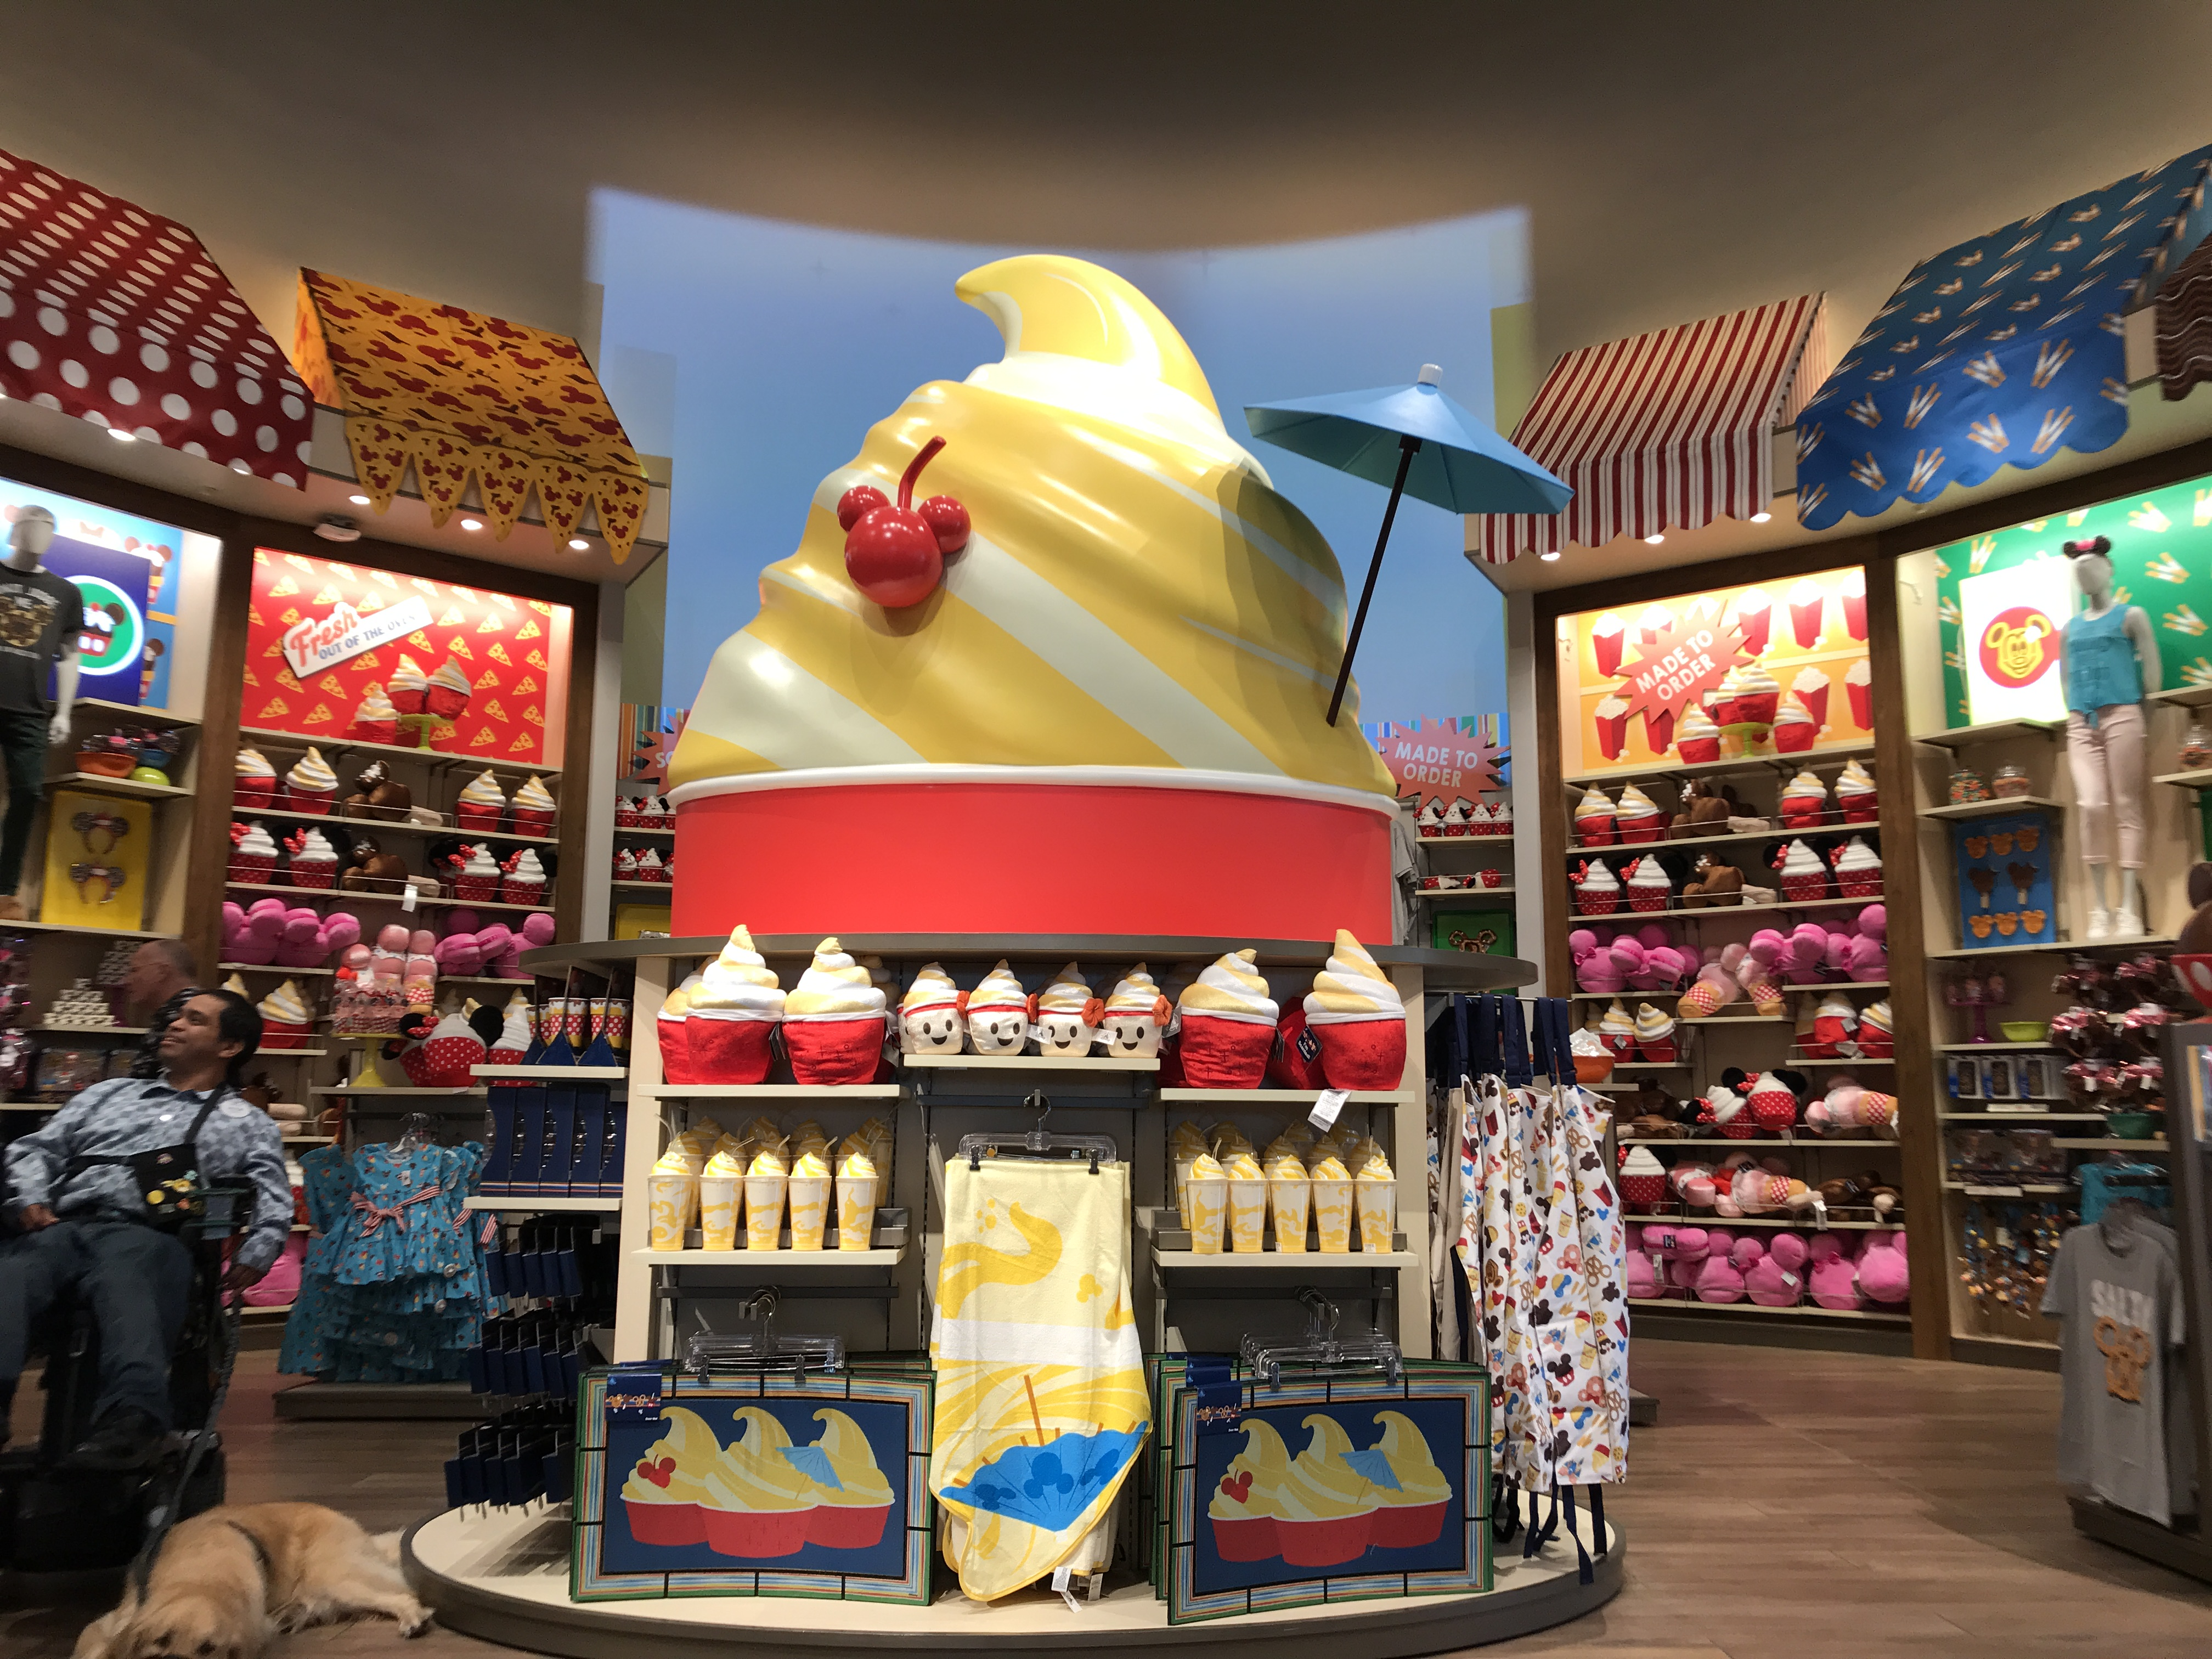 Grab your favorite Snack gifts at World of Disney!